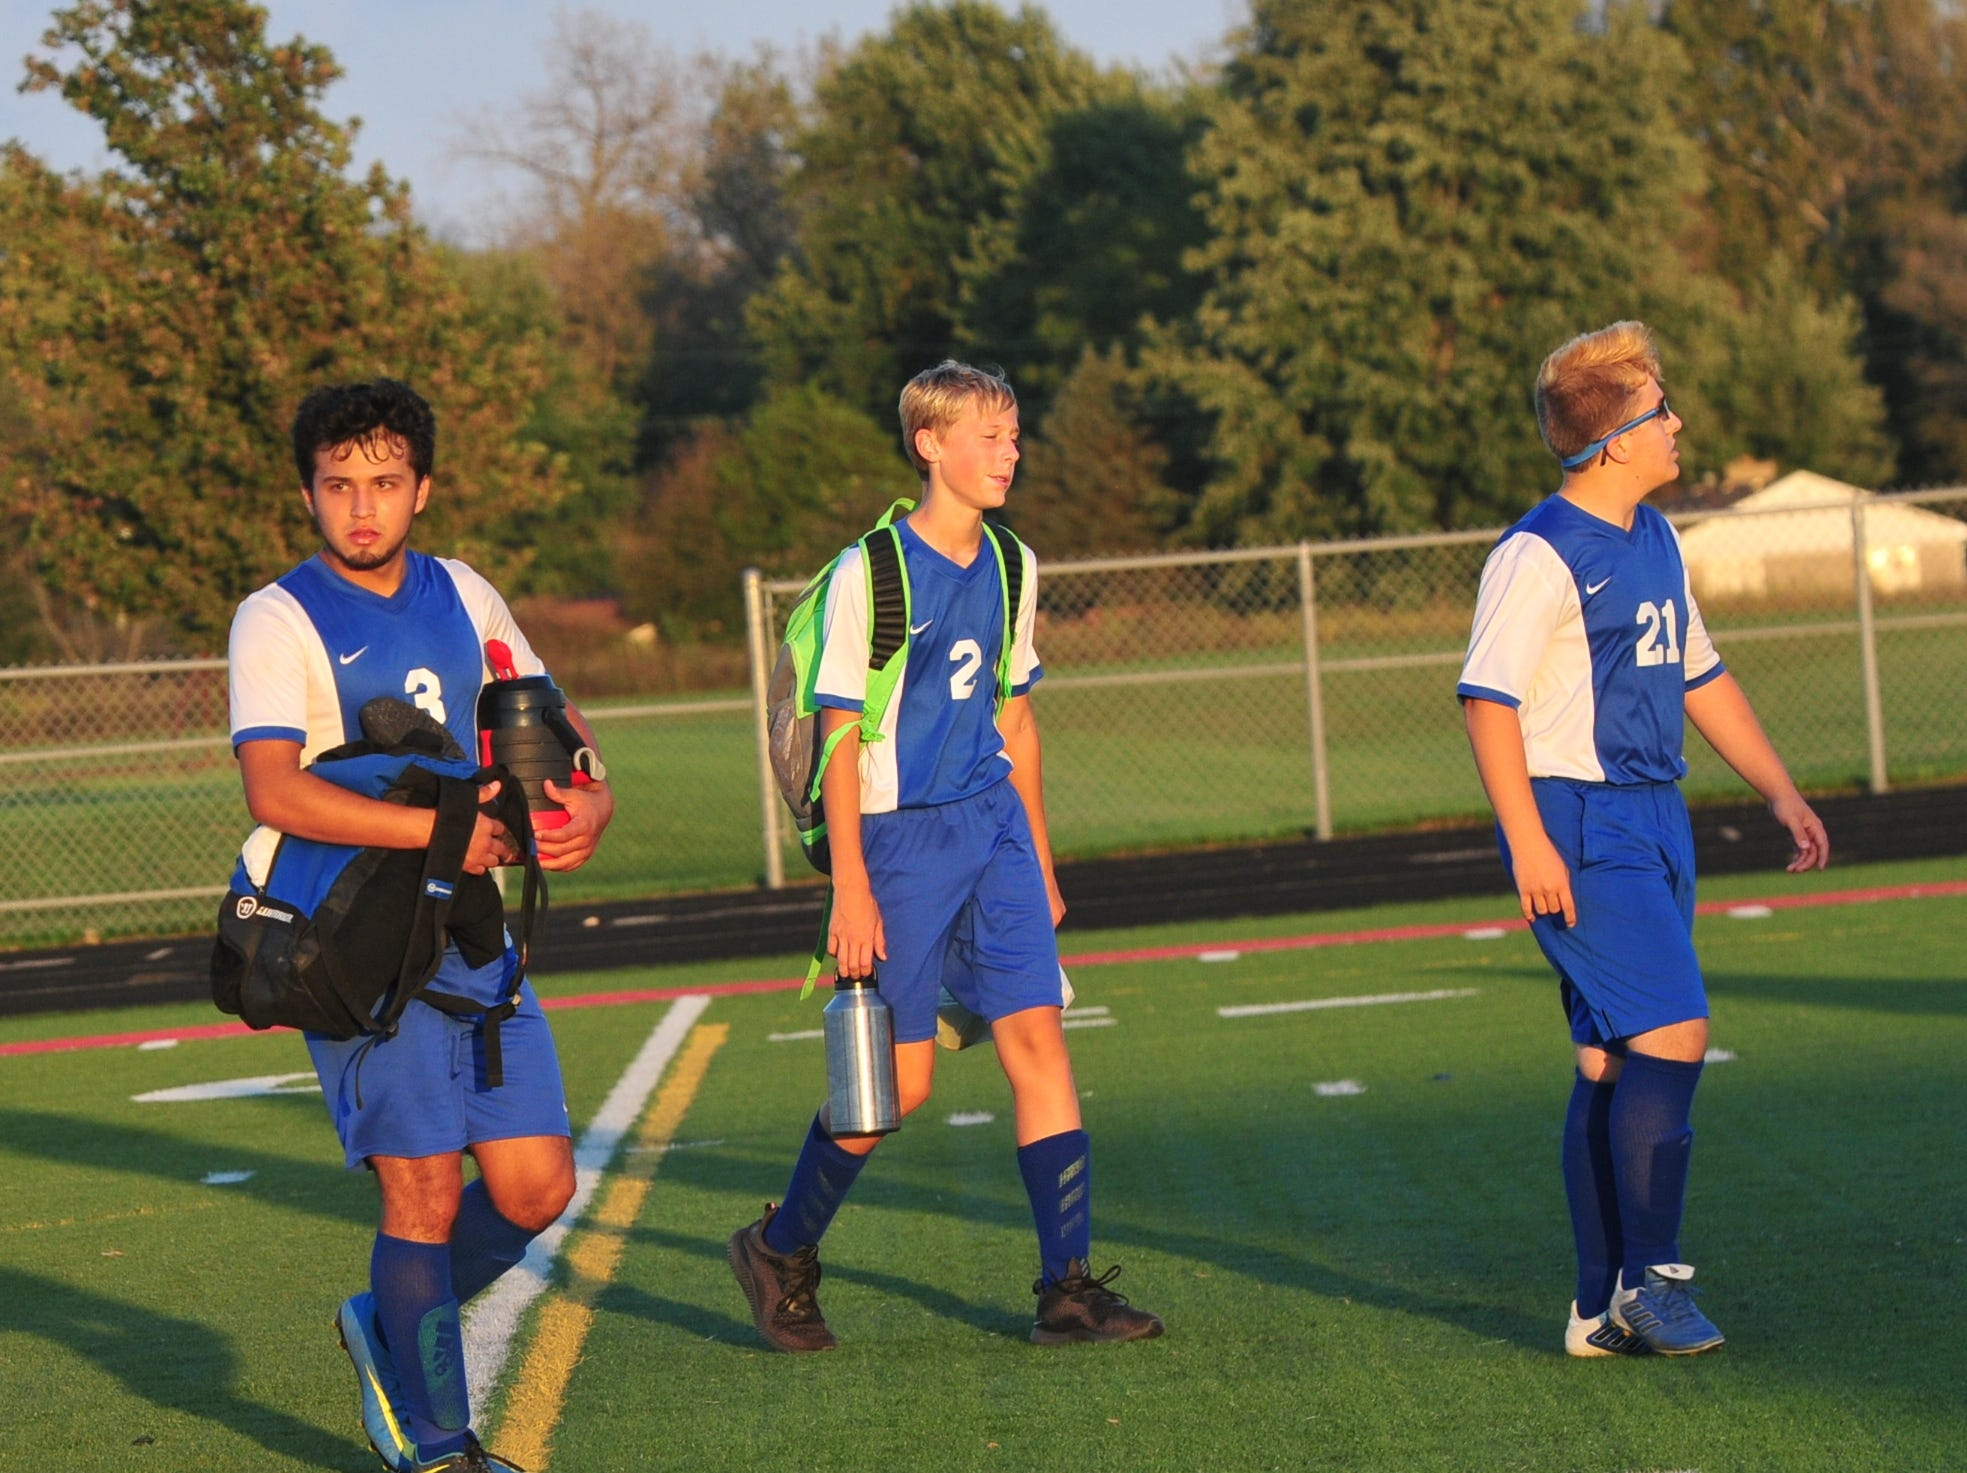 Centerville's Dante Torres (3), Lewis Marshall (2) and Cedric Jenkins (21) walk off the field after a 3-2 win during the IHSAA Class A Sectional 42 boys soccer semifinal at Knightstown Wednesday, Oct. 3, 2018.